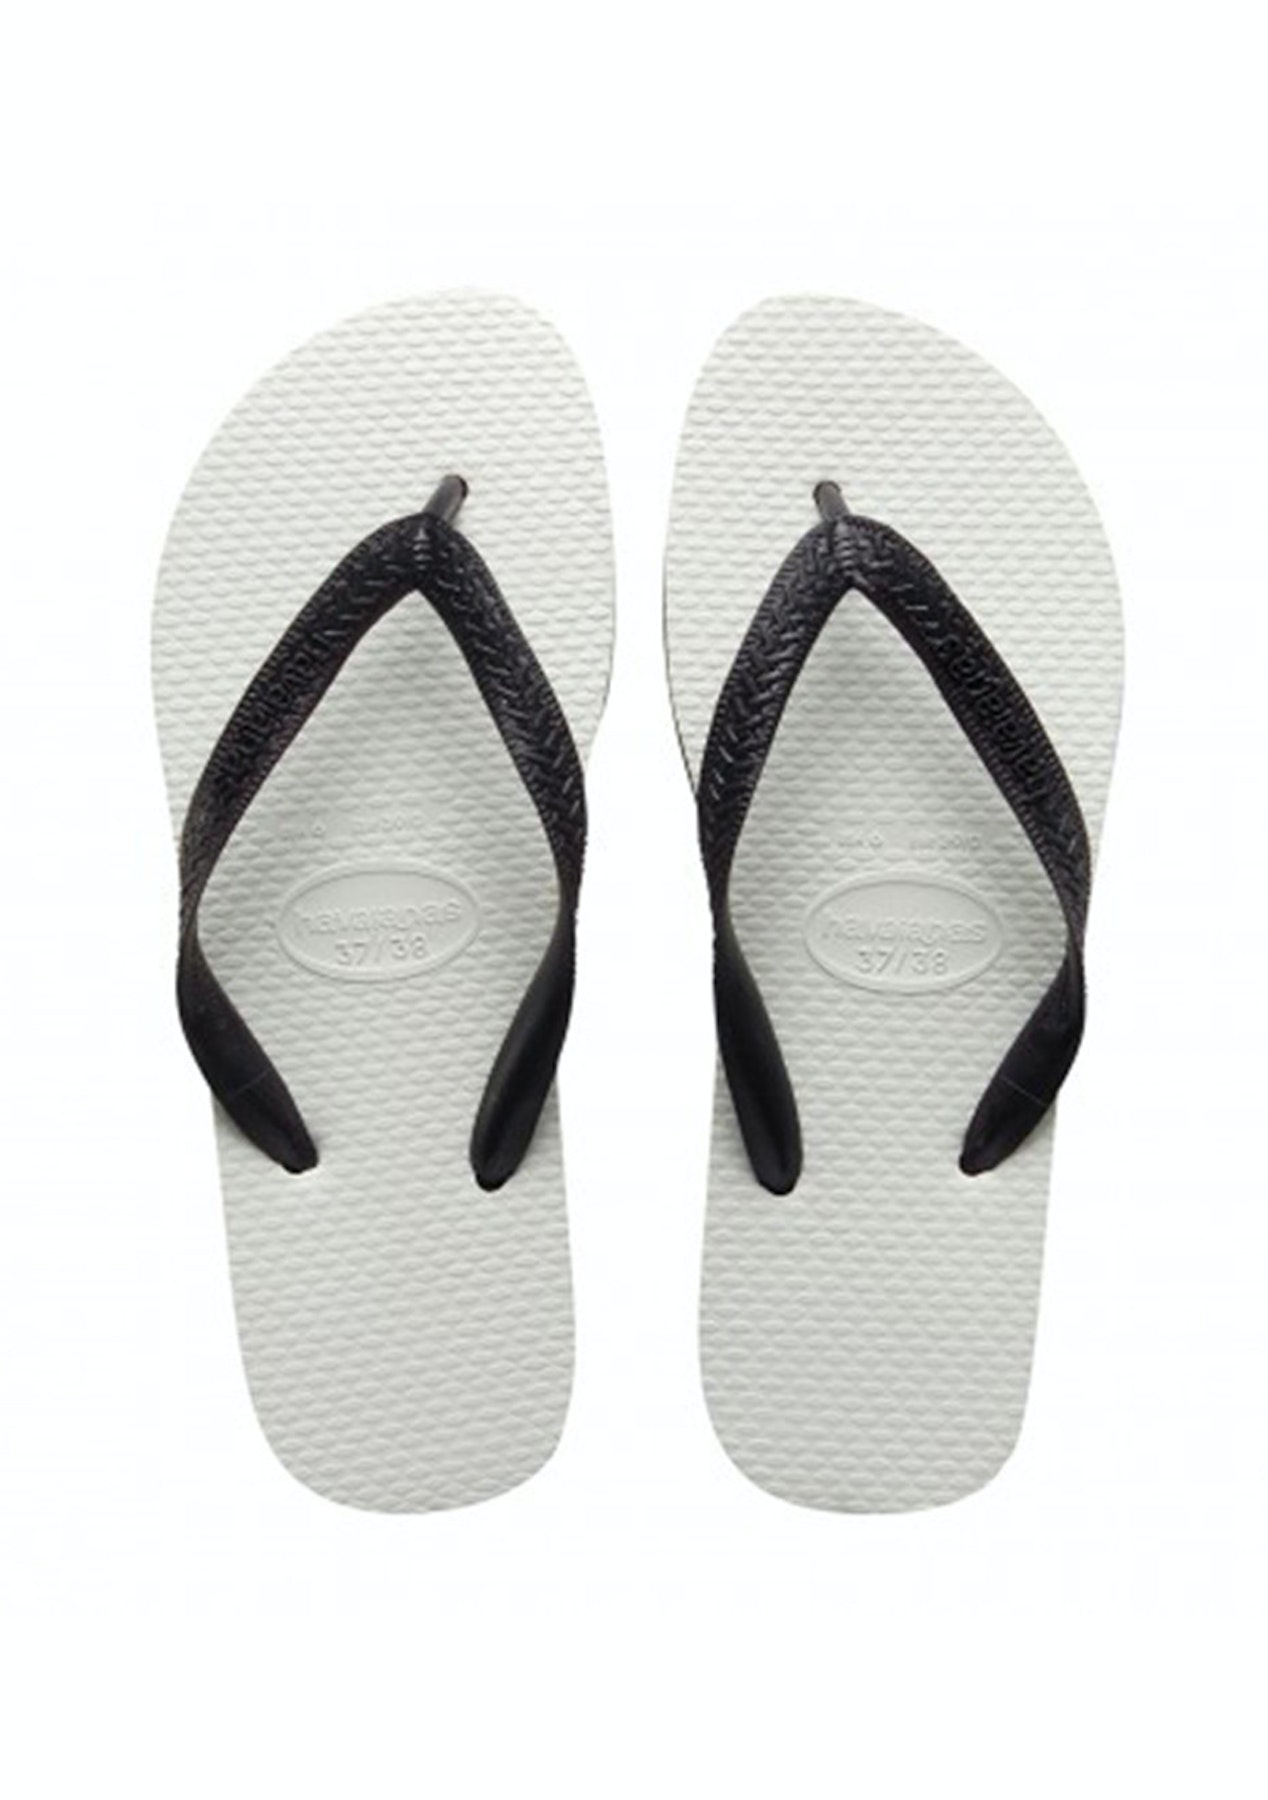 340c012a9 Havaianas - Traditional 0090 - Black - Havaianas for the Family from  9.99  - Onceit